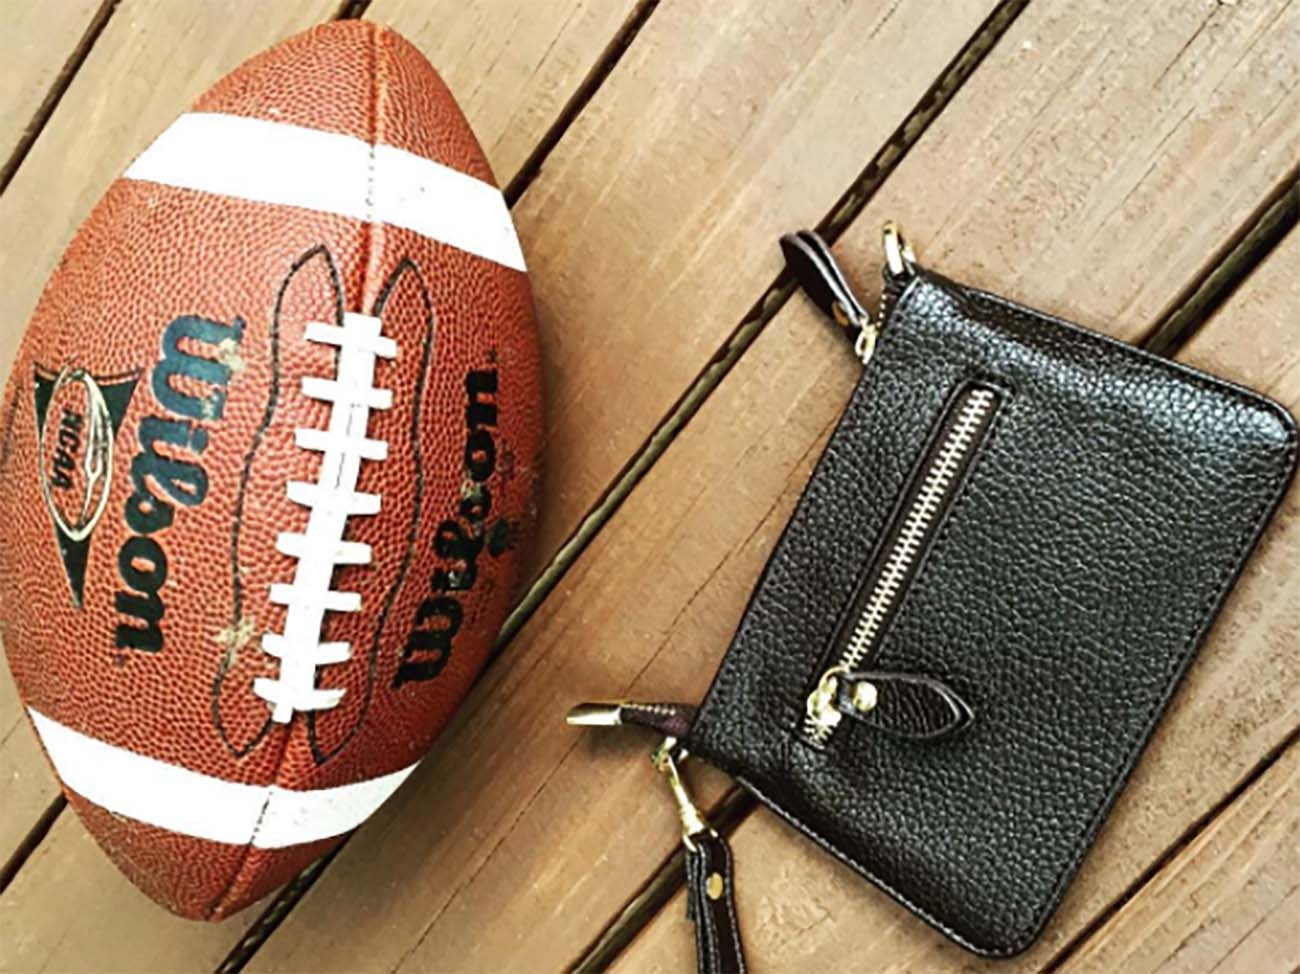 Charlotte startup POLICY Handbags is setting out to make the NFL's handbag policy fashionable